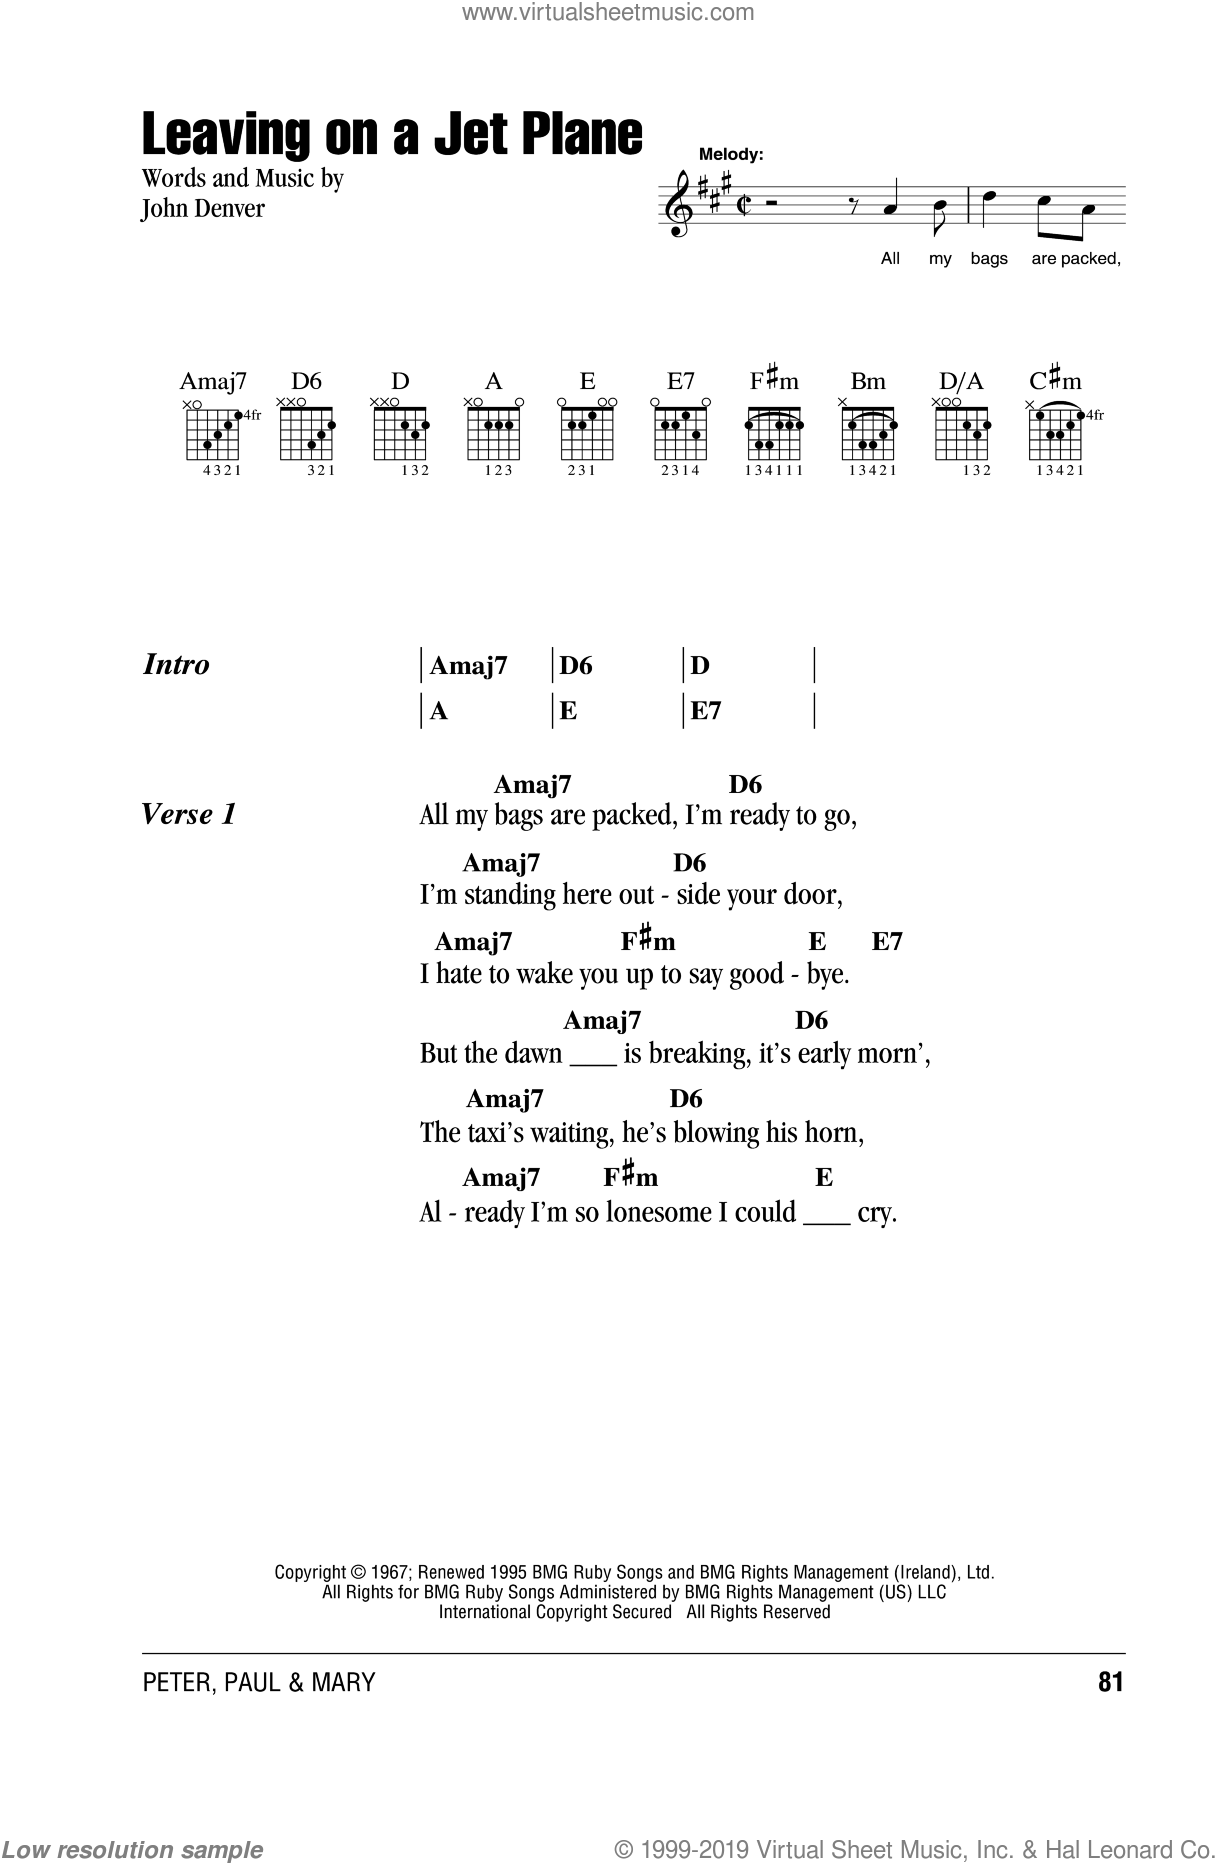 Leaving On A Jet Plane sheet music for guitar (chords) by Peter, Paul & Mary, intermediate skill level